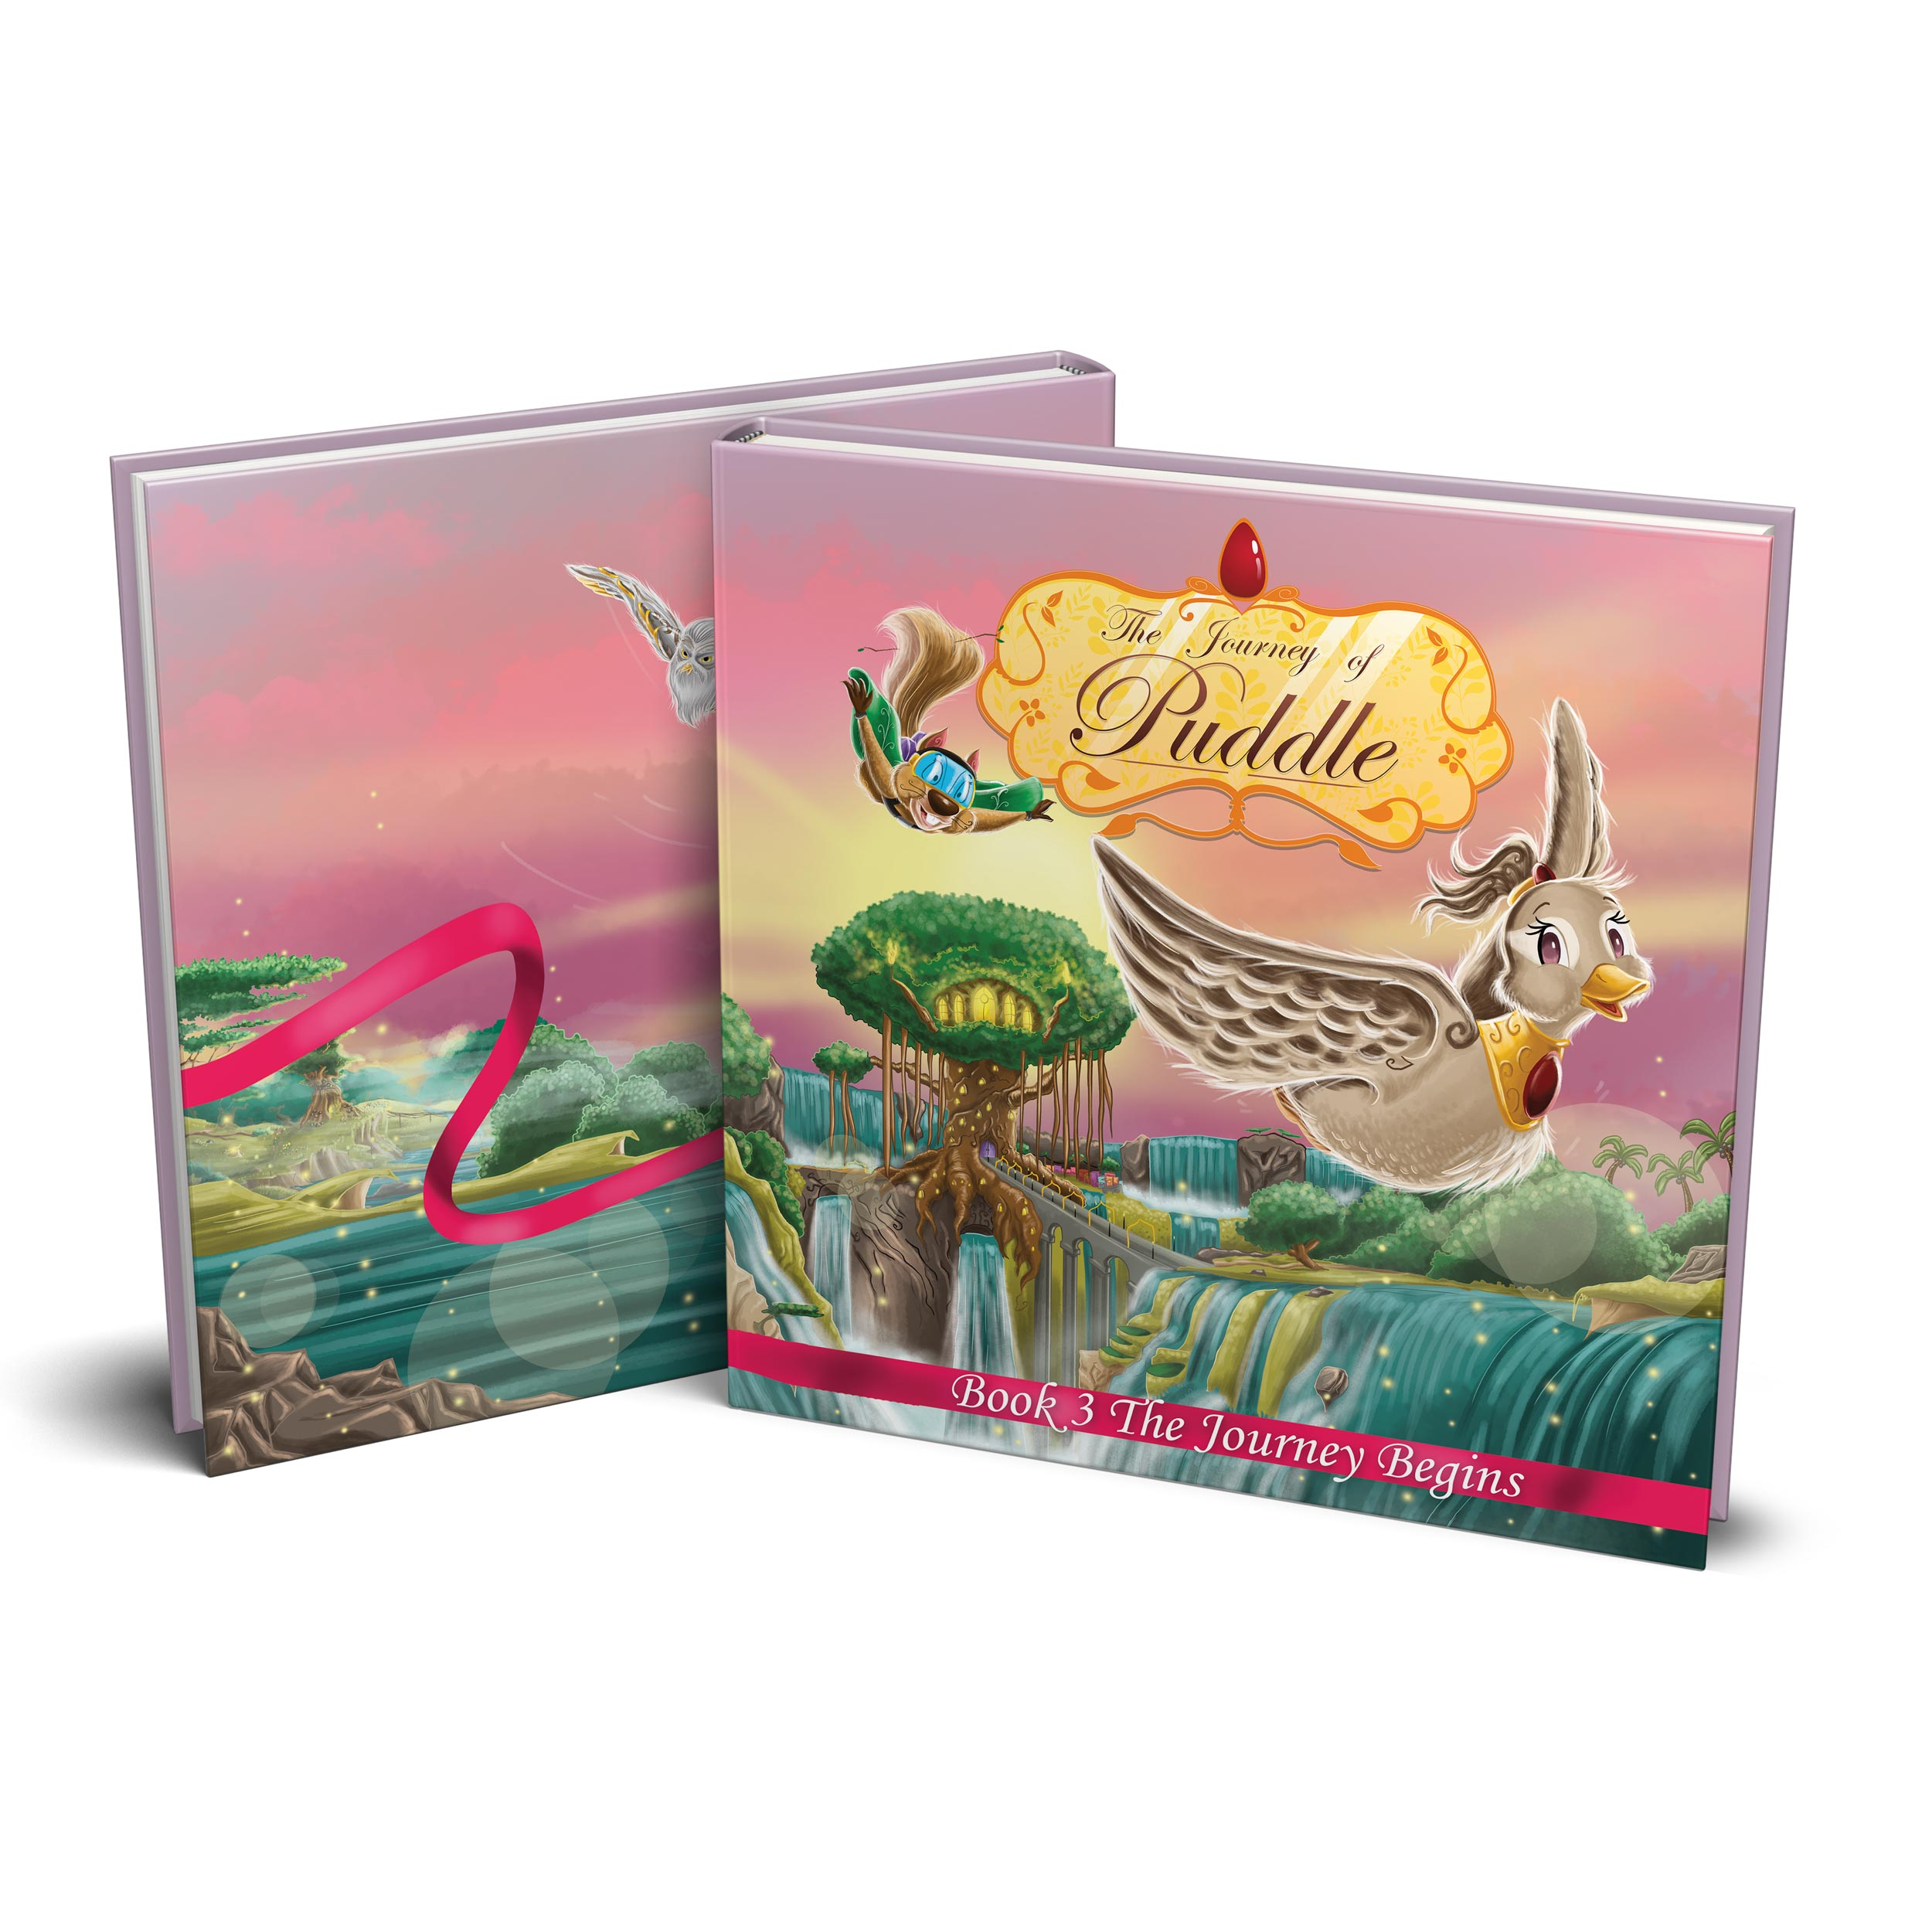 journey-of-puddle-christian-illustrated-children-books-book-3-buy-now.jpg